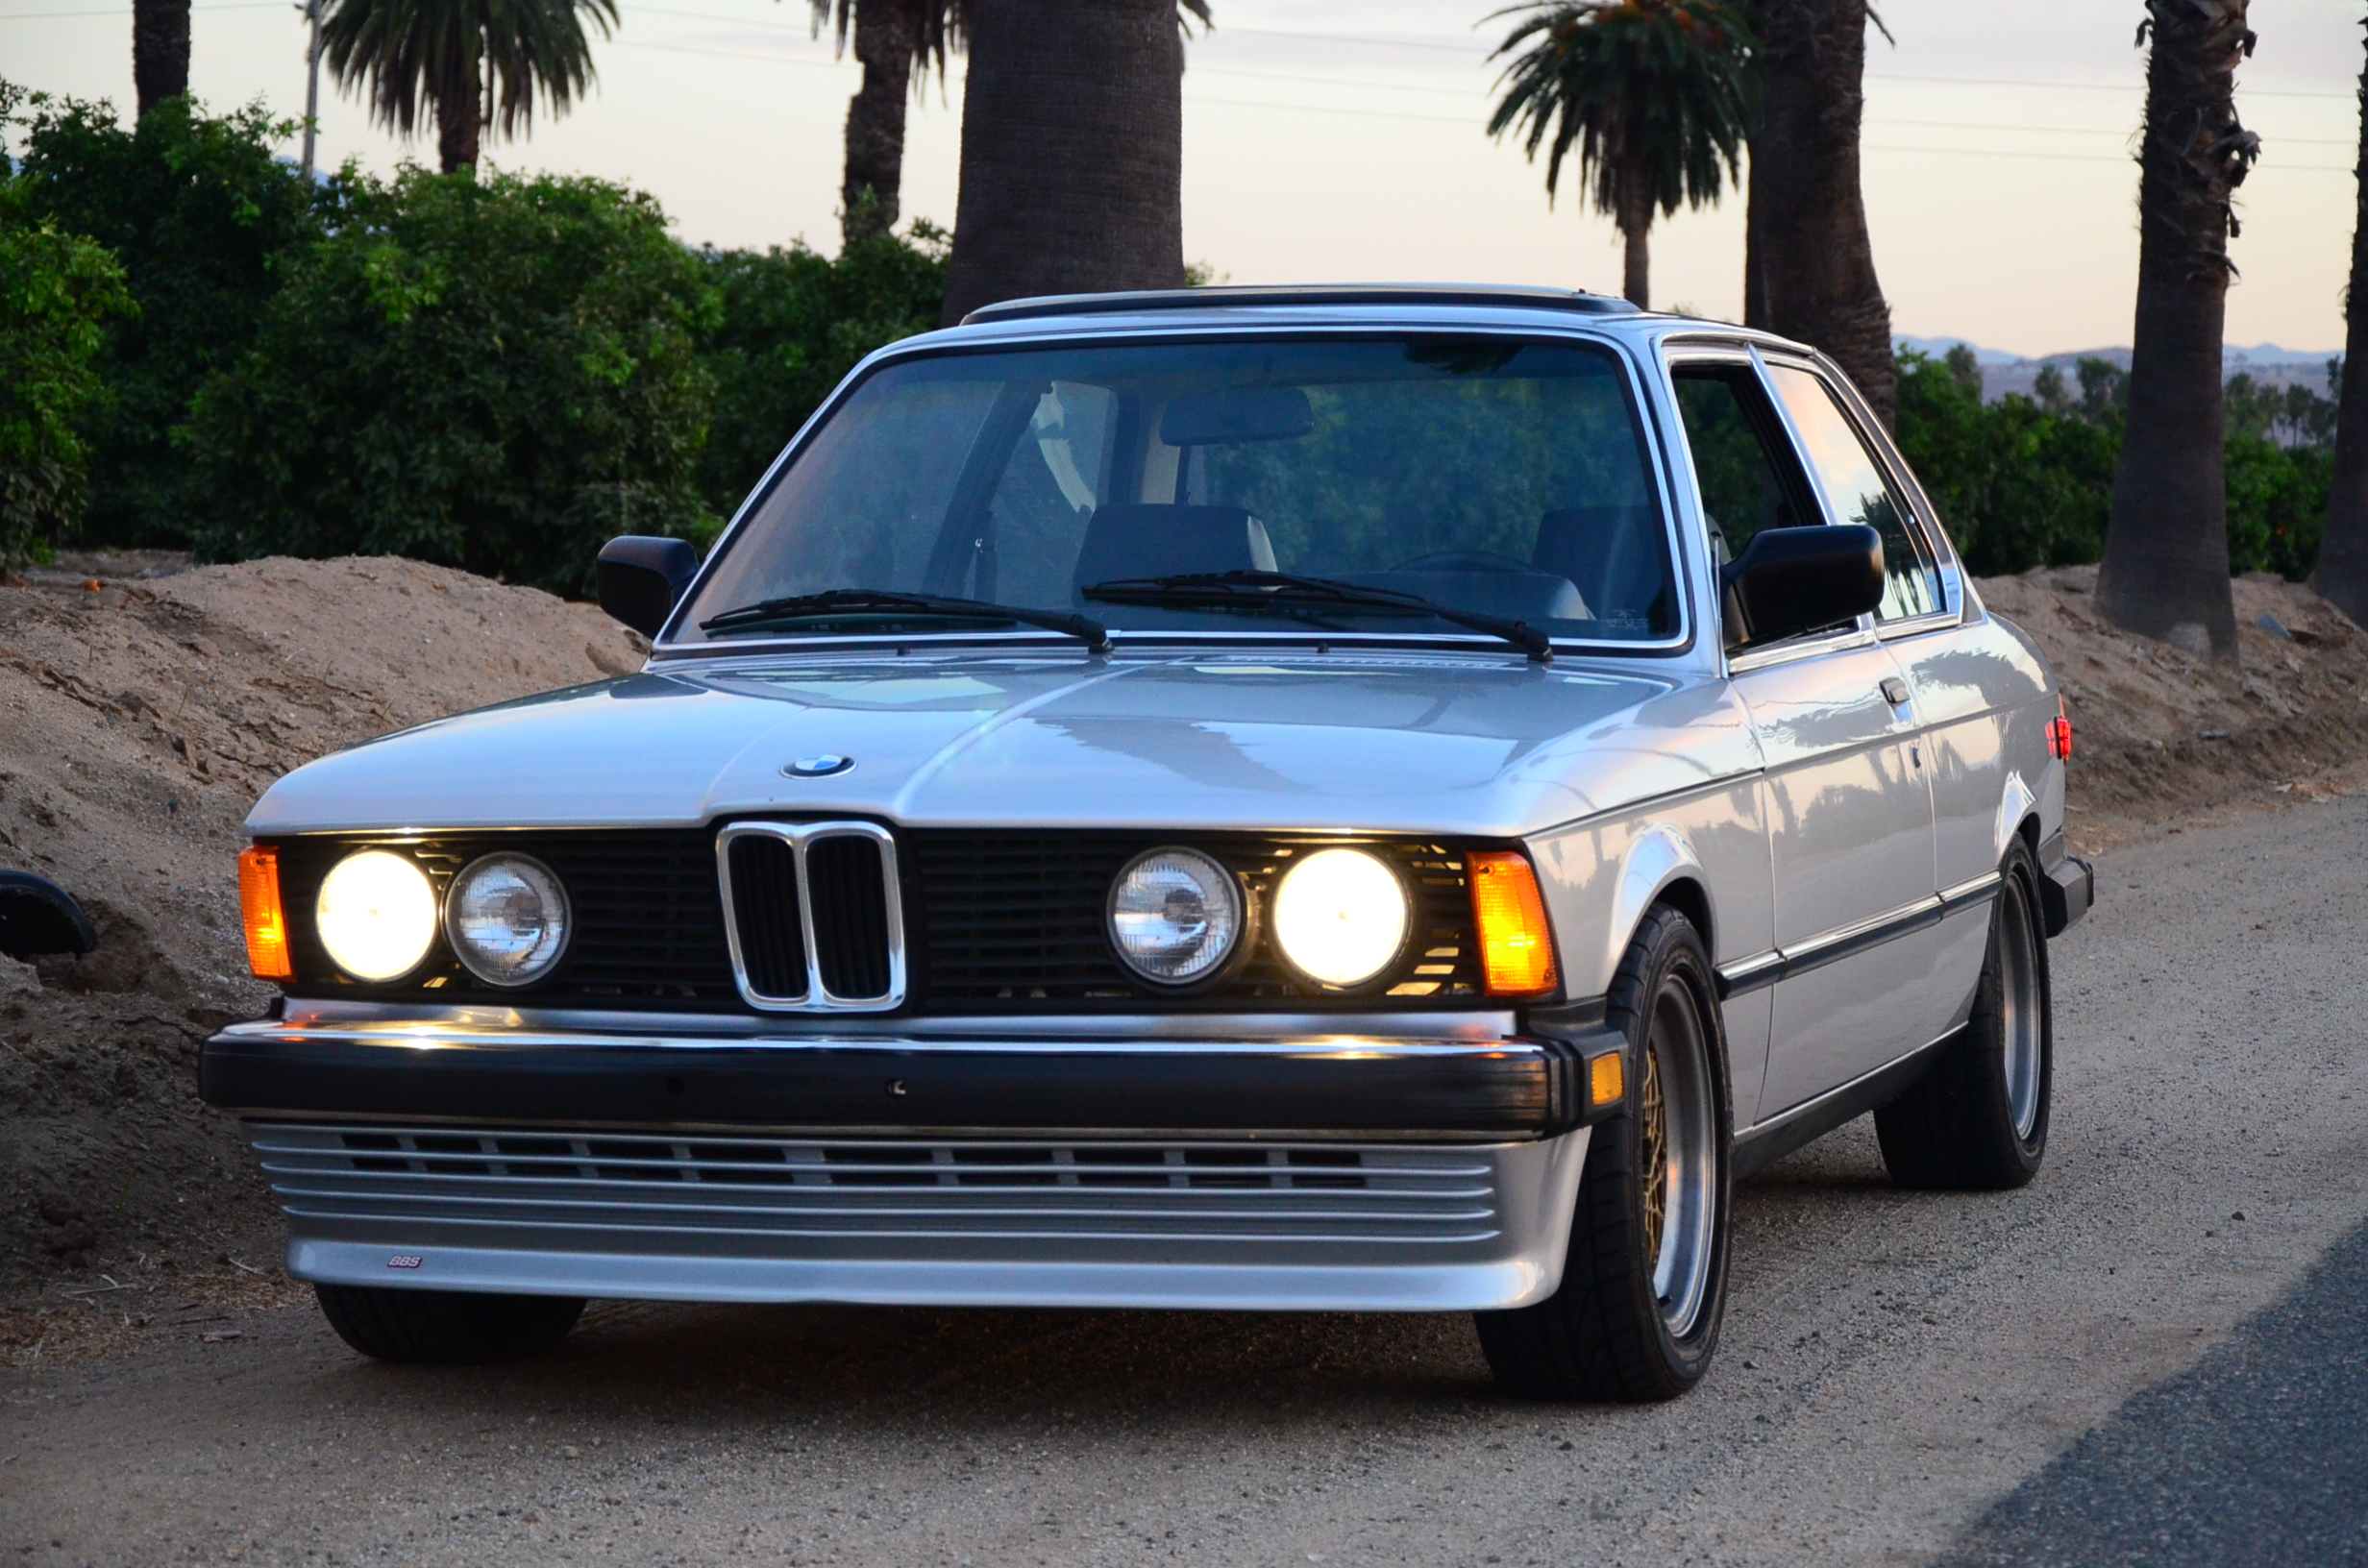 The 1982 BMW E21 320is